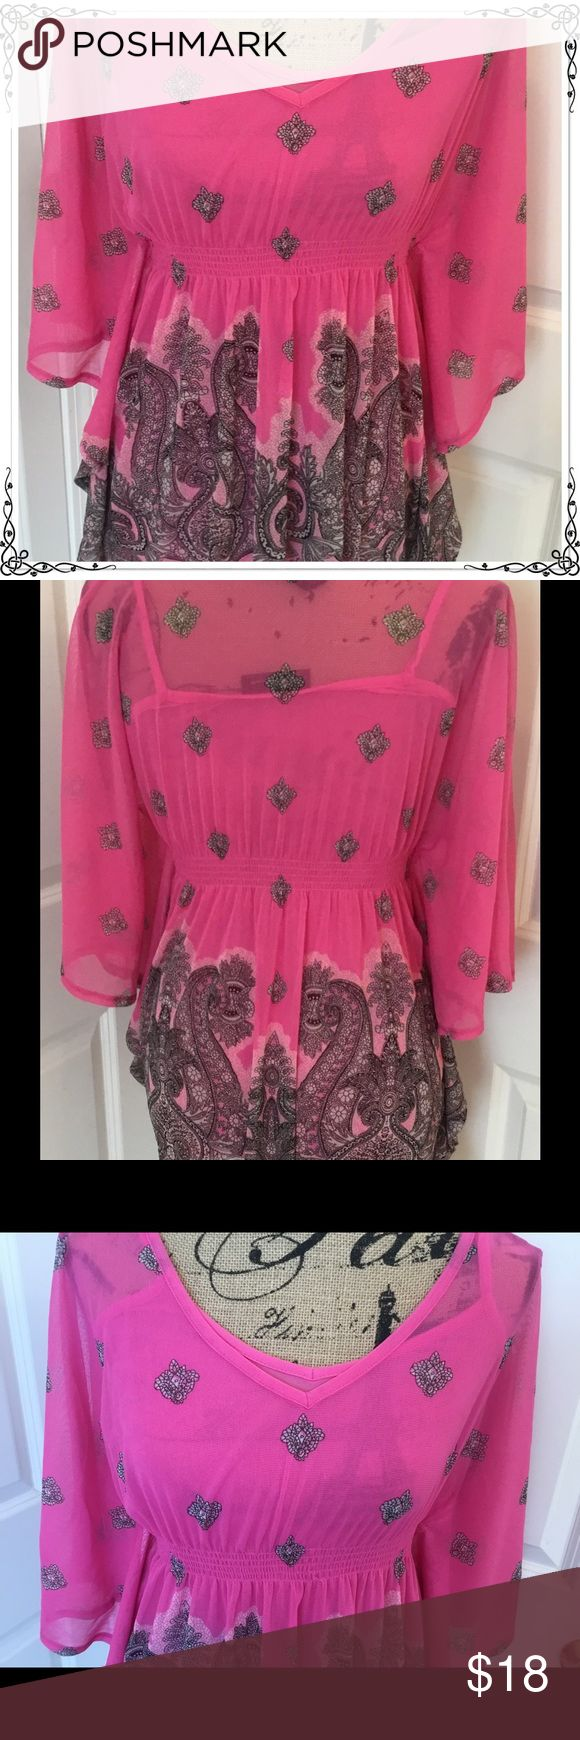 INC International Concepts Pink Batwing Top Small This is a beautiful batwing top from INC International Concepts.  Size small.  100% nylon.  Built in camisole.  This might have been worn once, if at all. INC International Concepts Tops